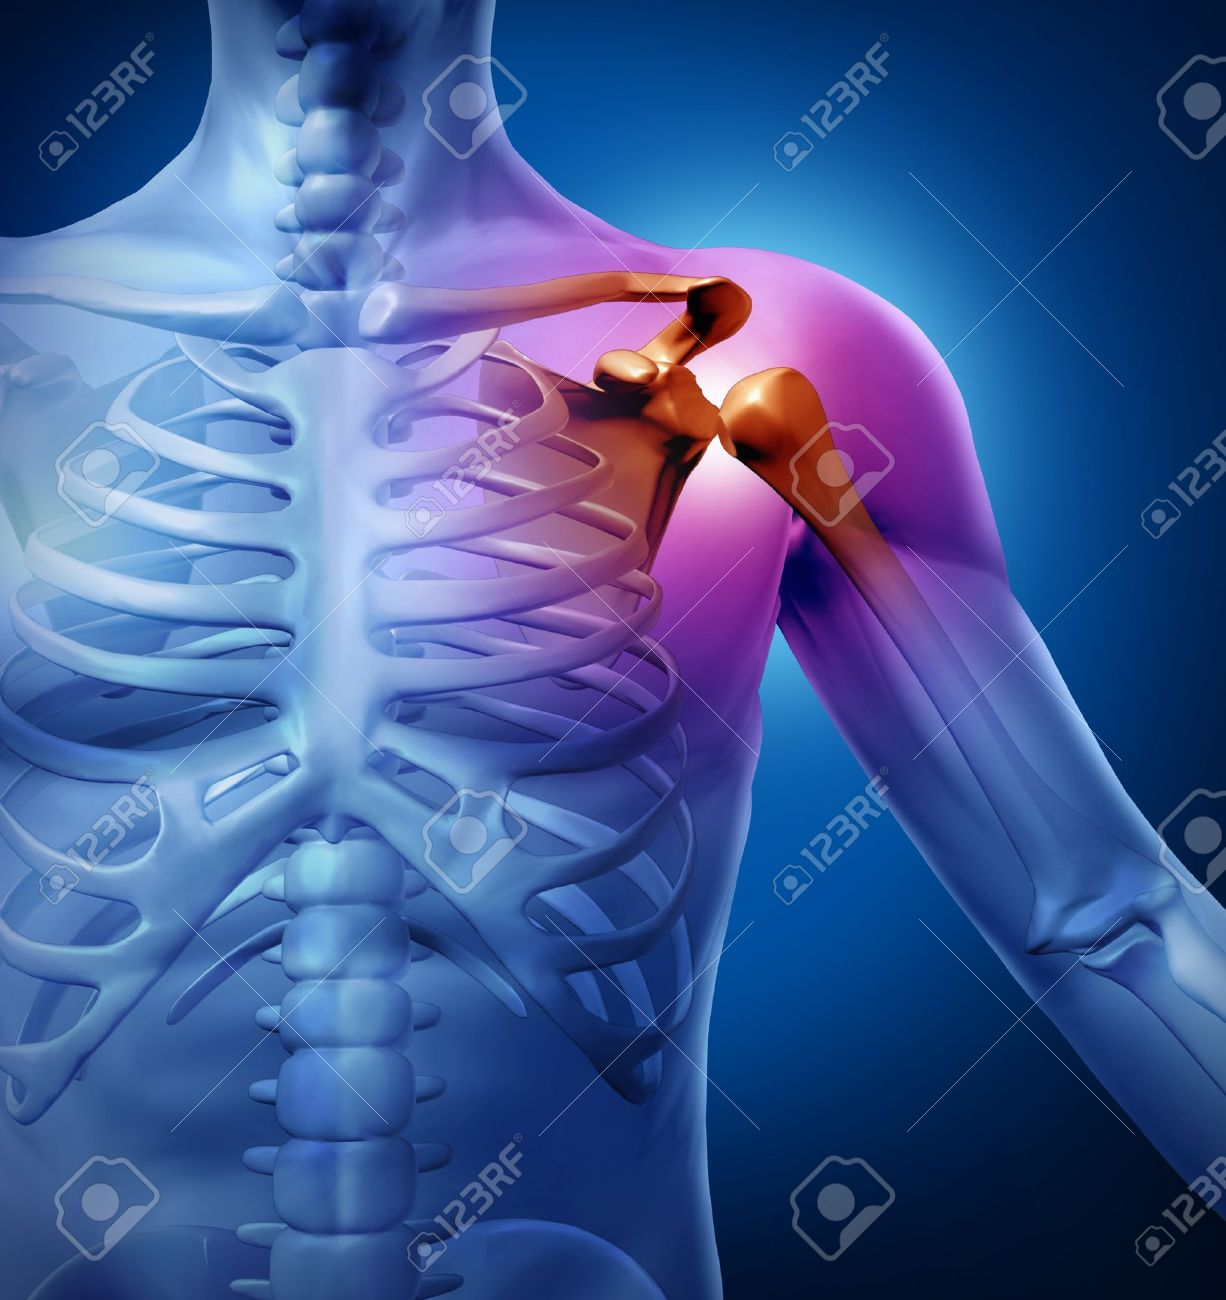 Human Shoulder Pain With An Anatomy Injury Caused By Sports Accident ...